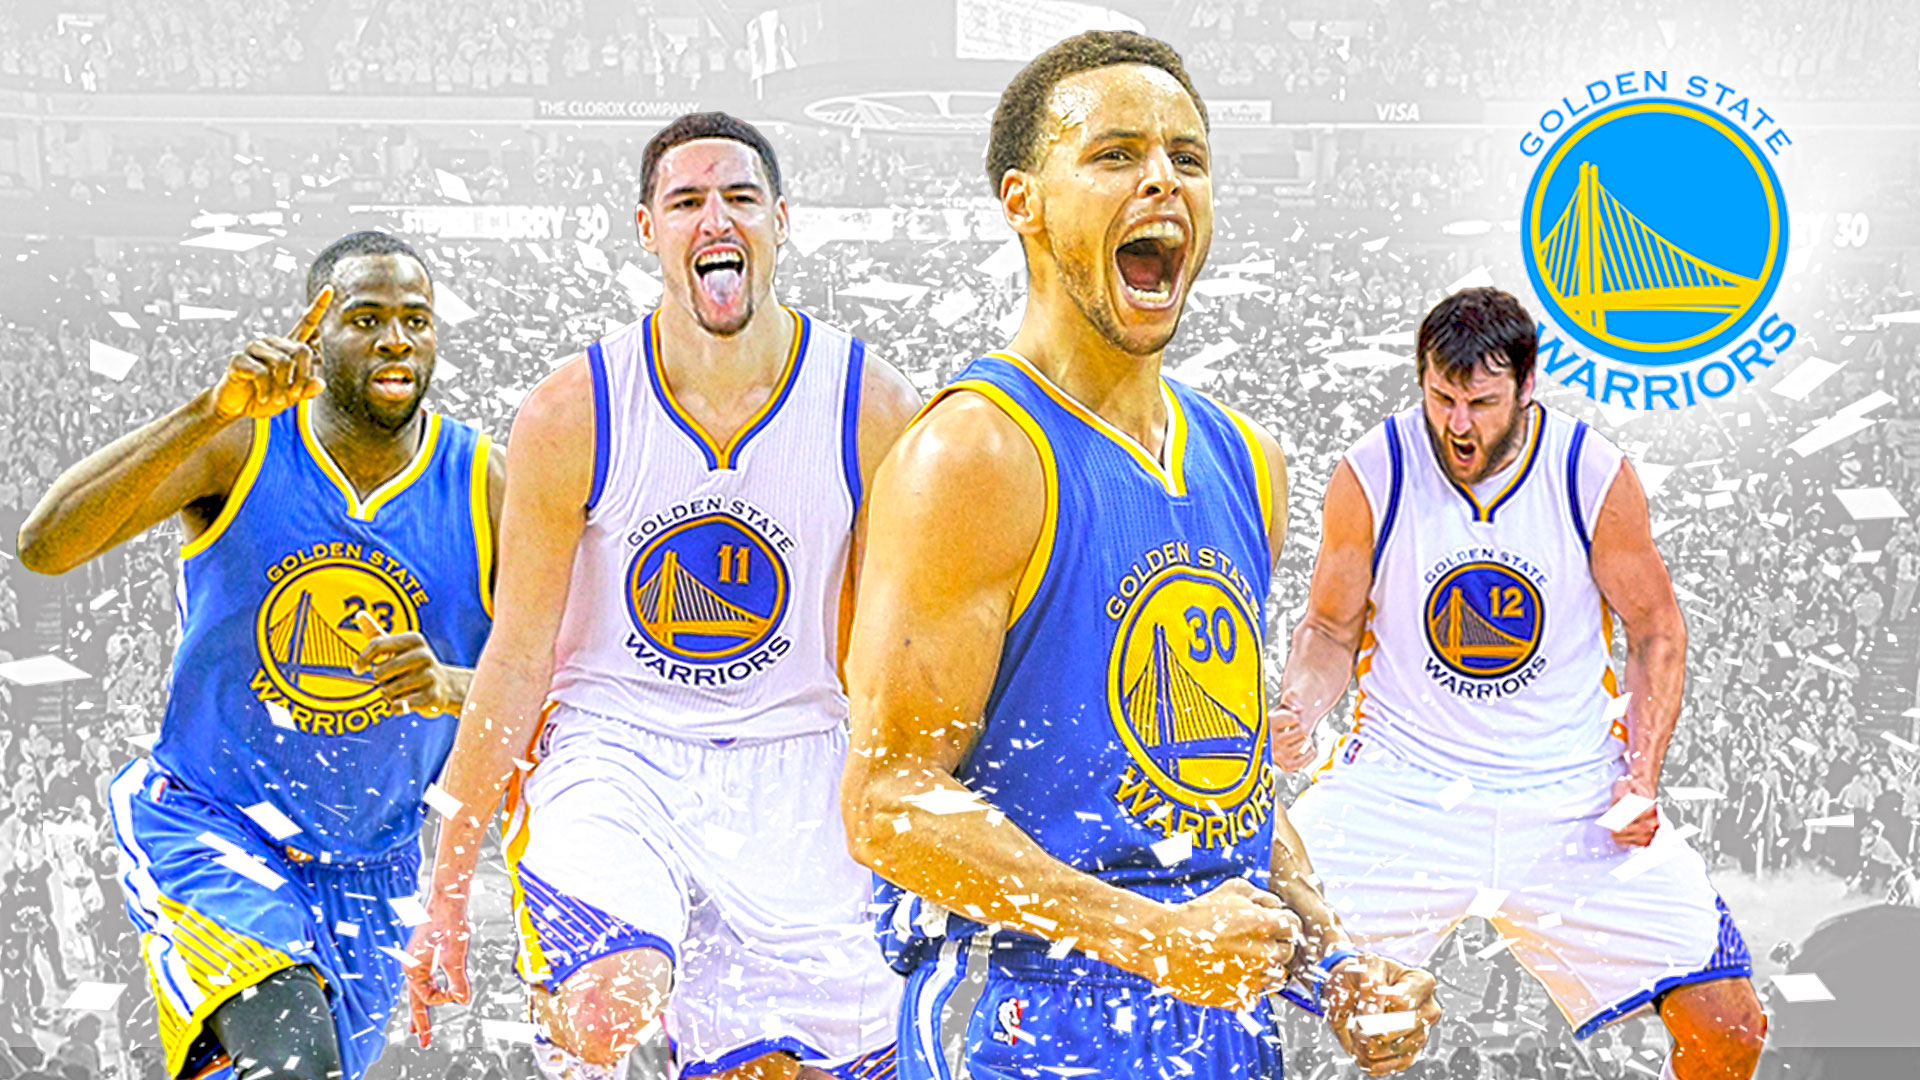 Stephen Curry And Klay Thompson Wallpaper Posted By Christopher